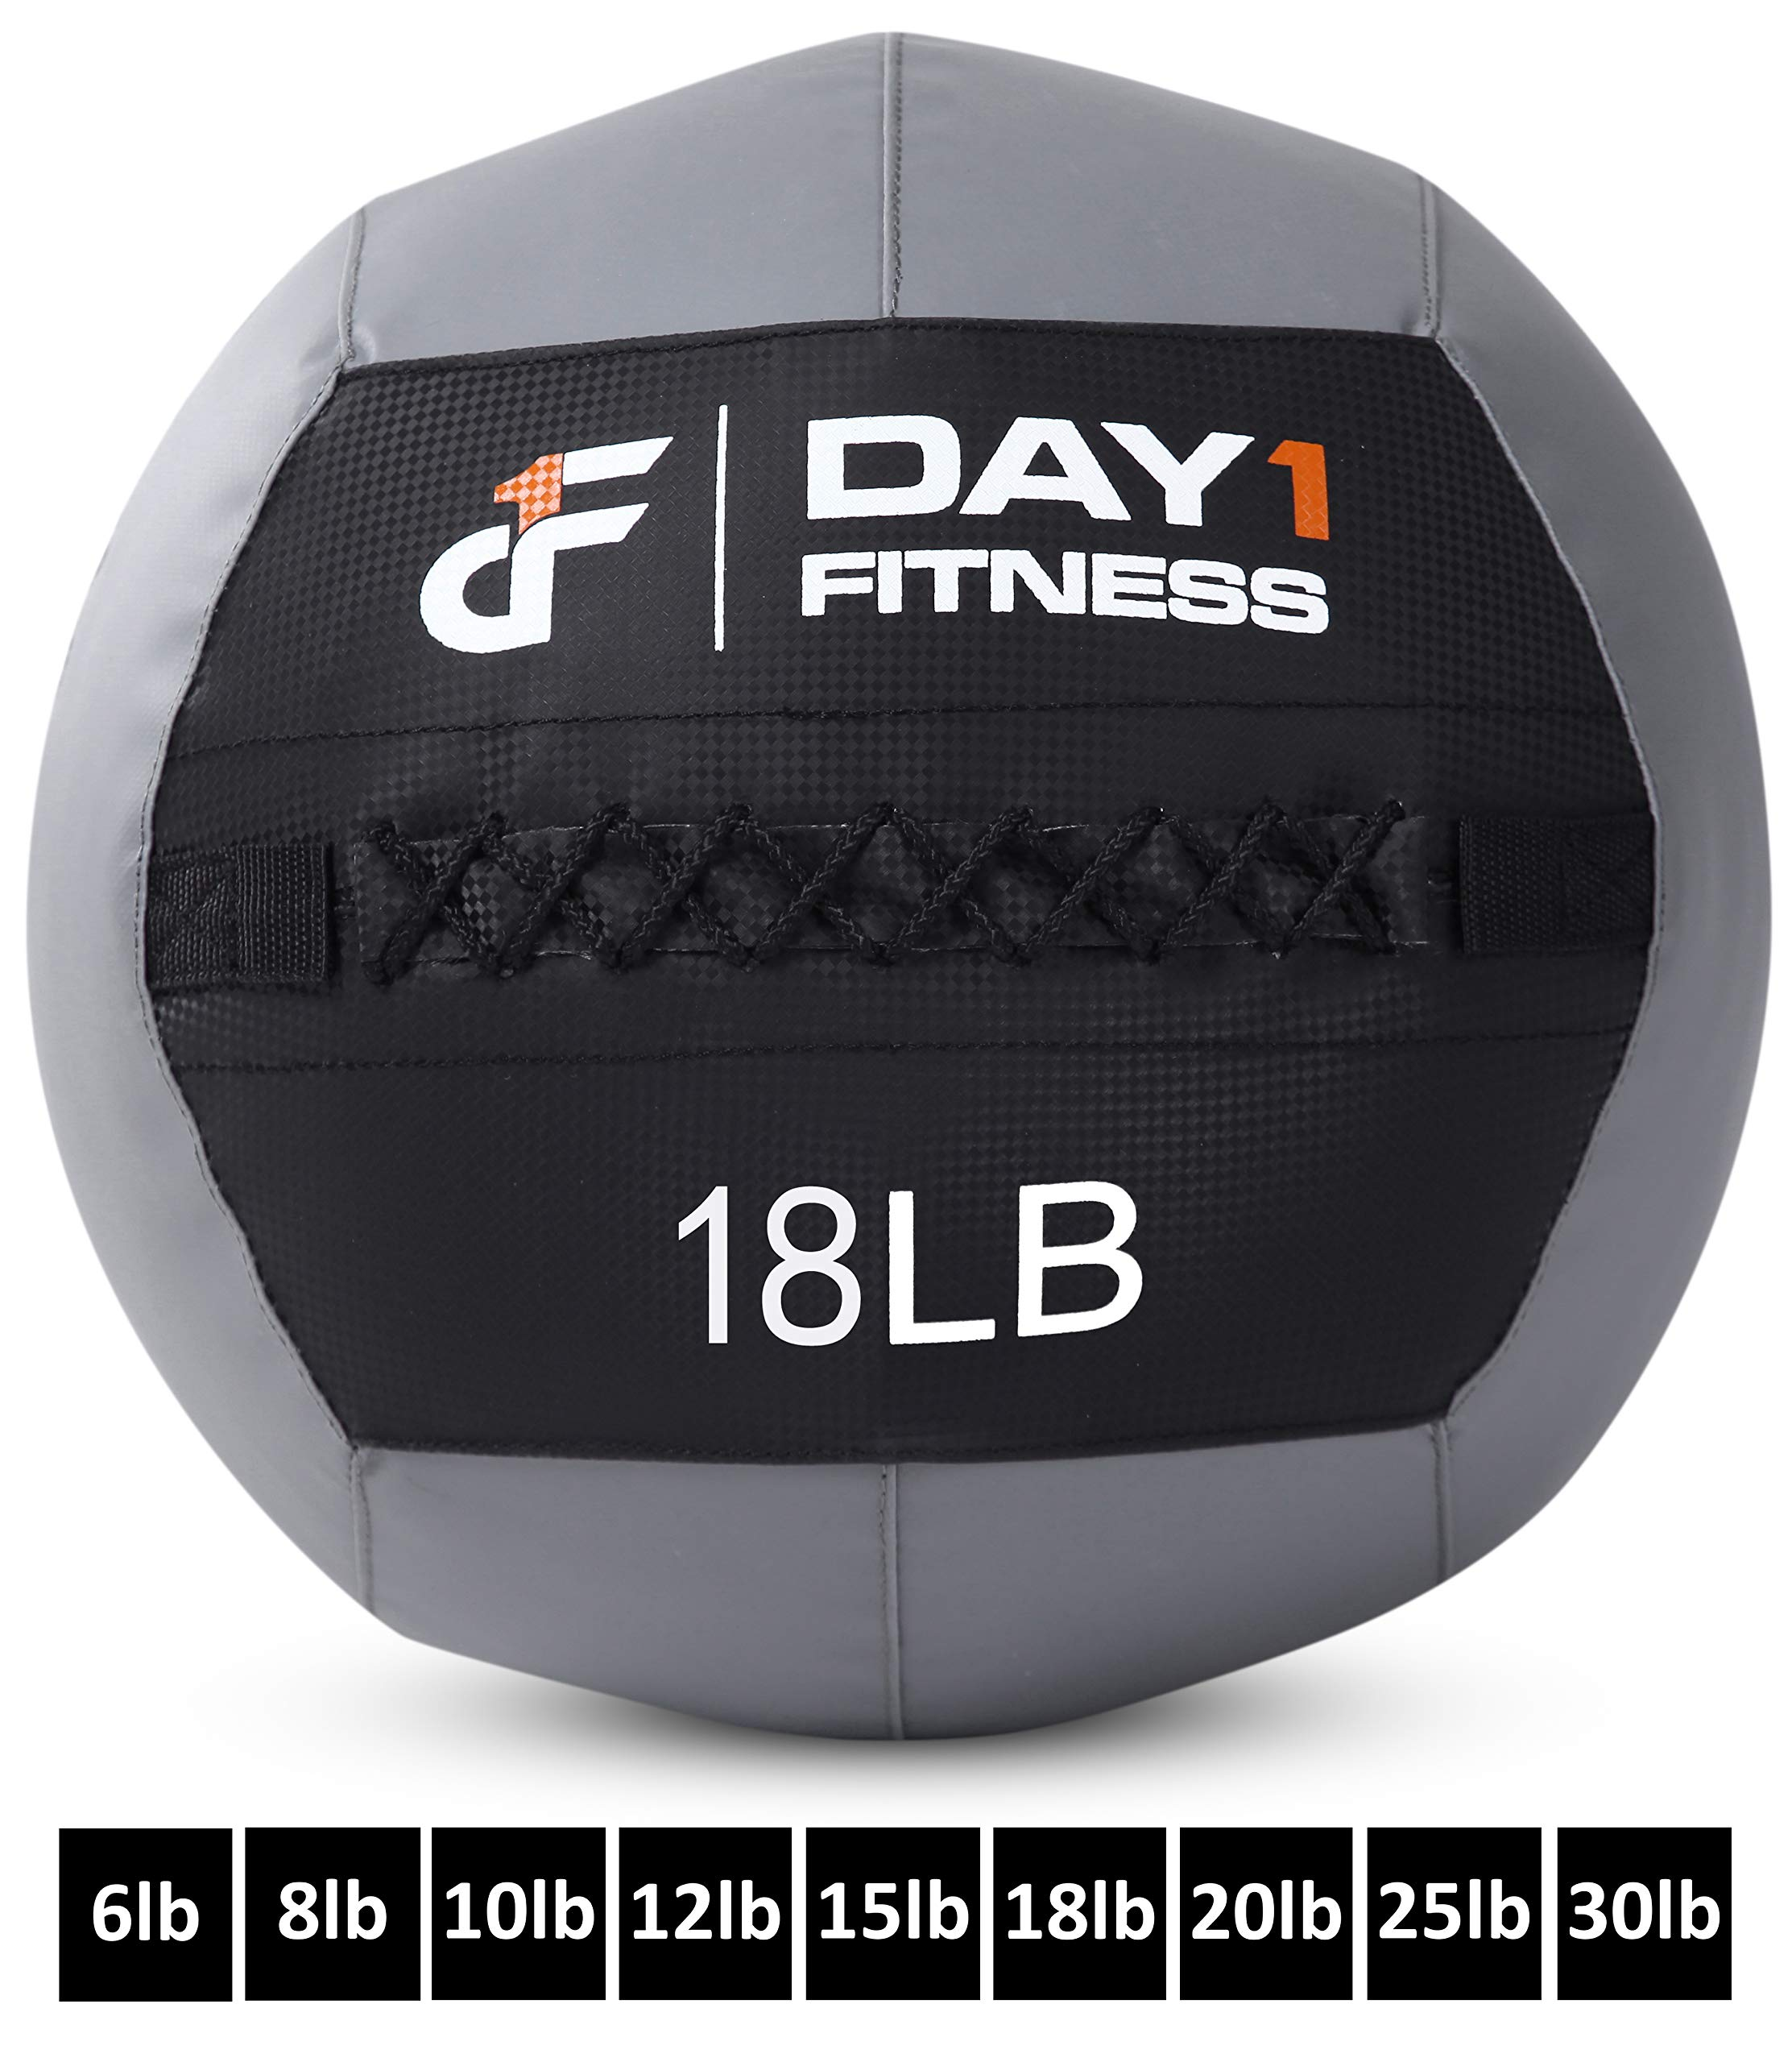 Day 1 Fitness Soft Wall Medicine Ball 18 Pounds - for Exercise, Physical Therapy, Rehab, Core Strength, Large Durable Balls for TRX, Floor Exercises, Stretching by Day 1 Fitness